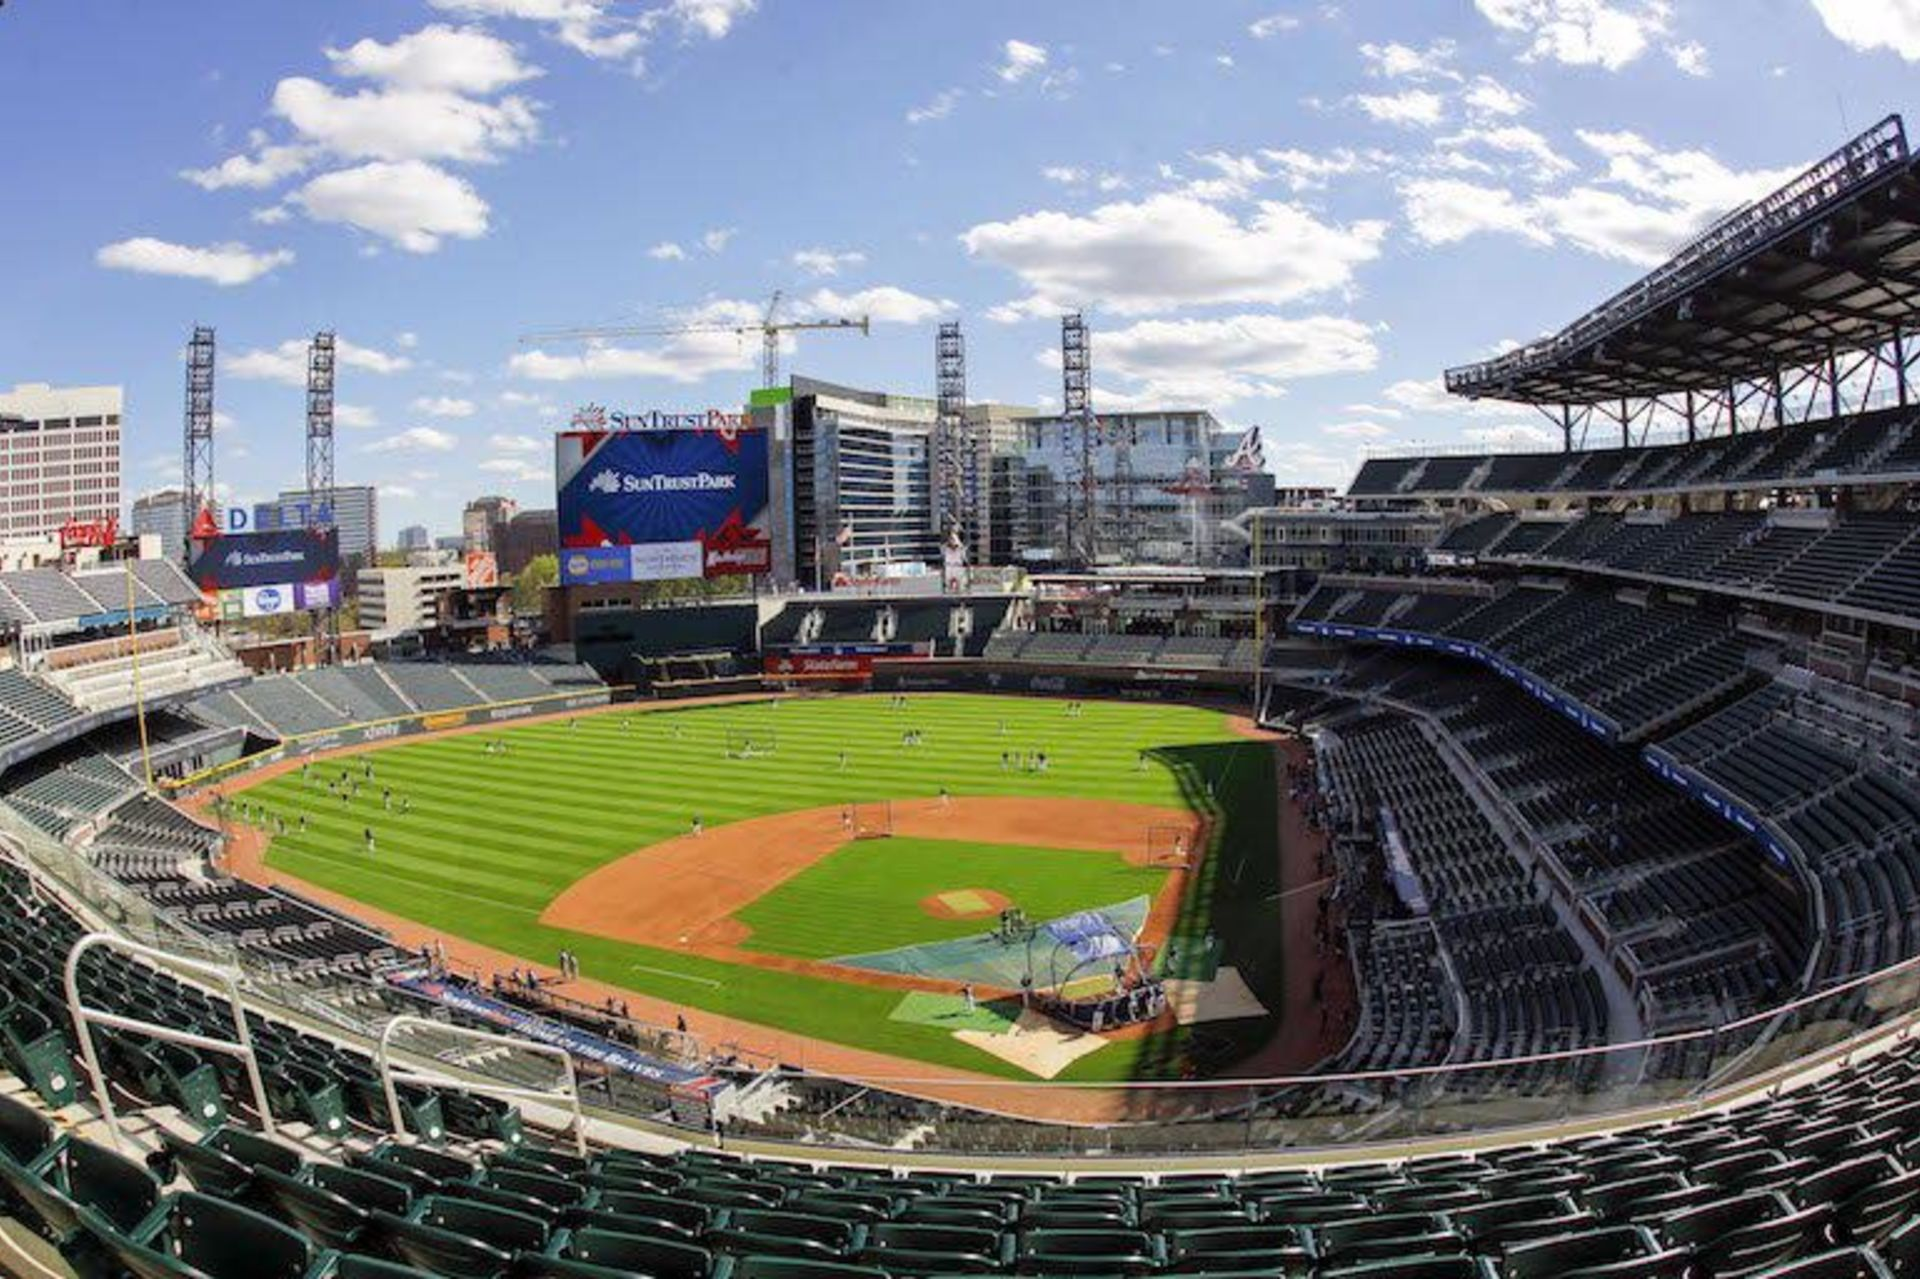 Suntrust Park Makes a Big Impact